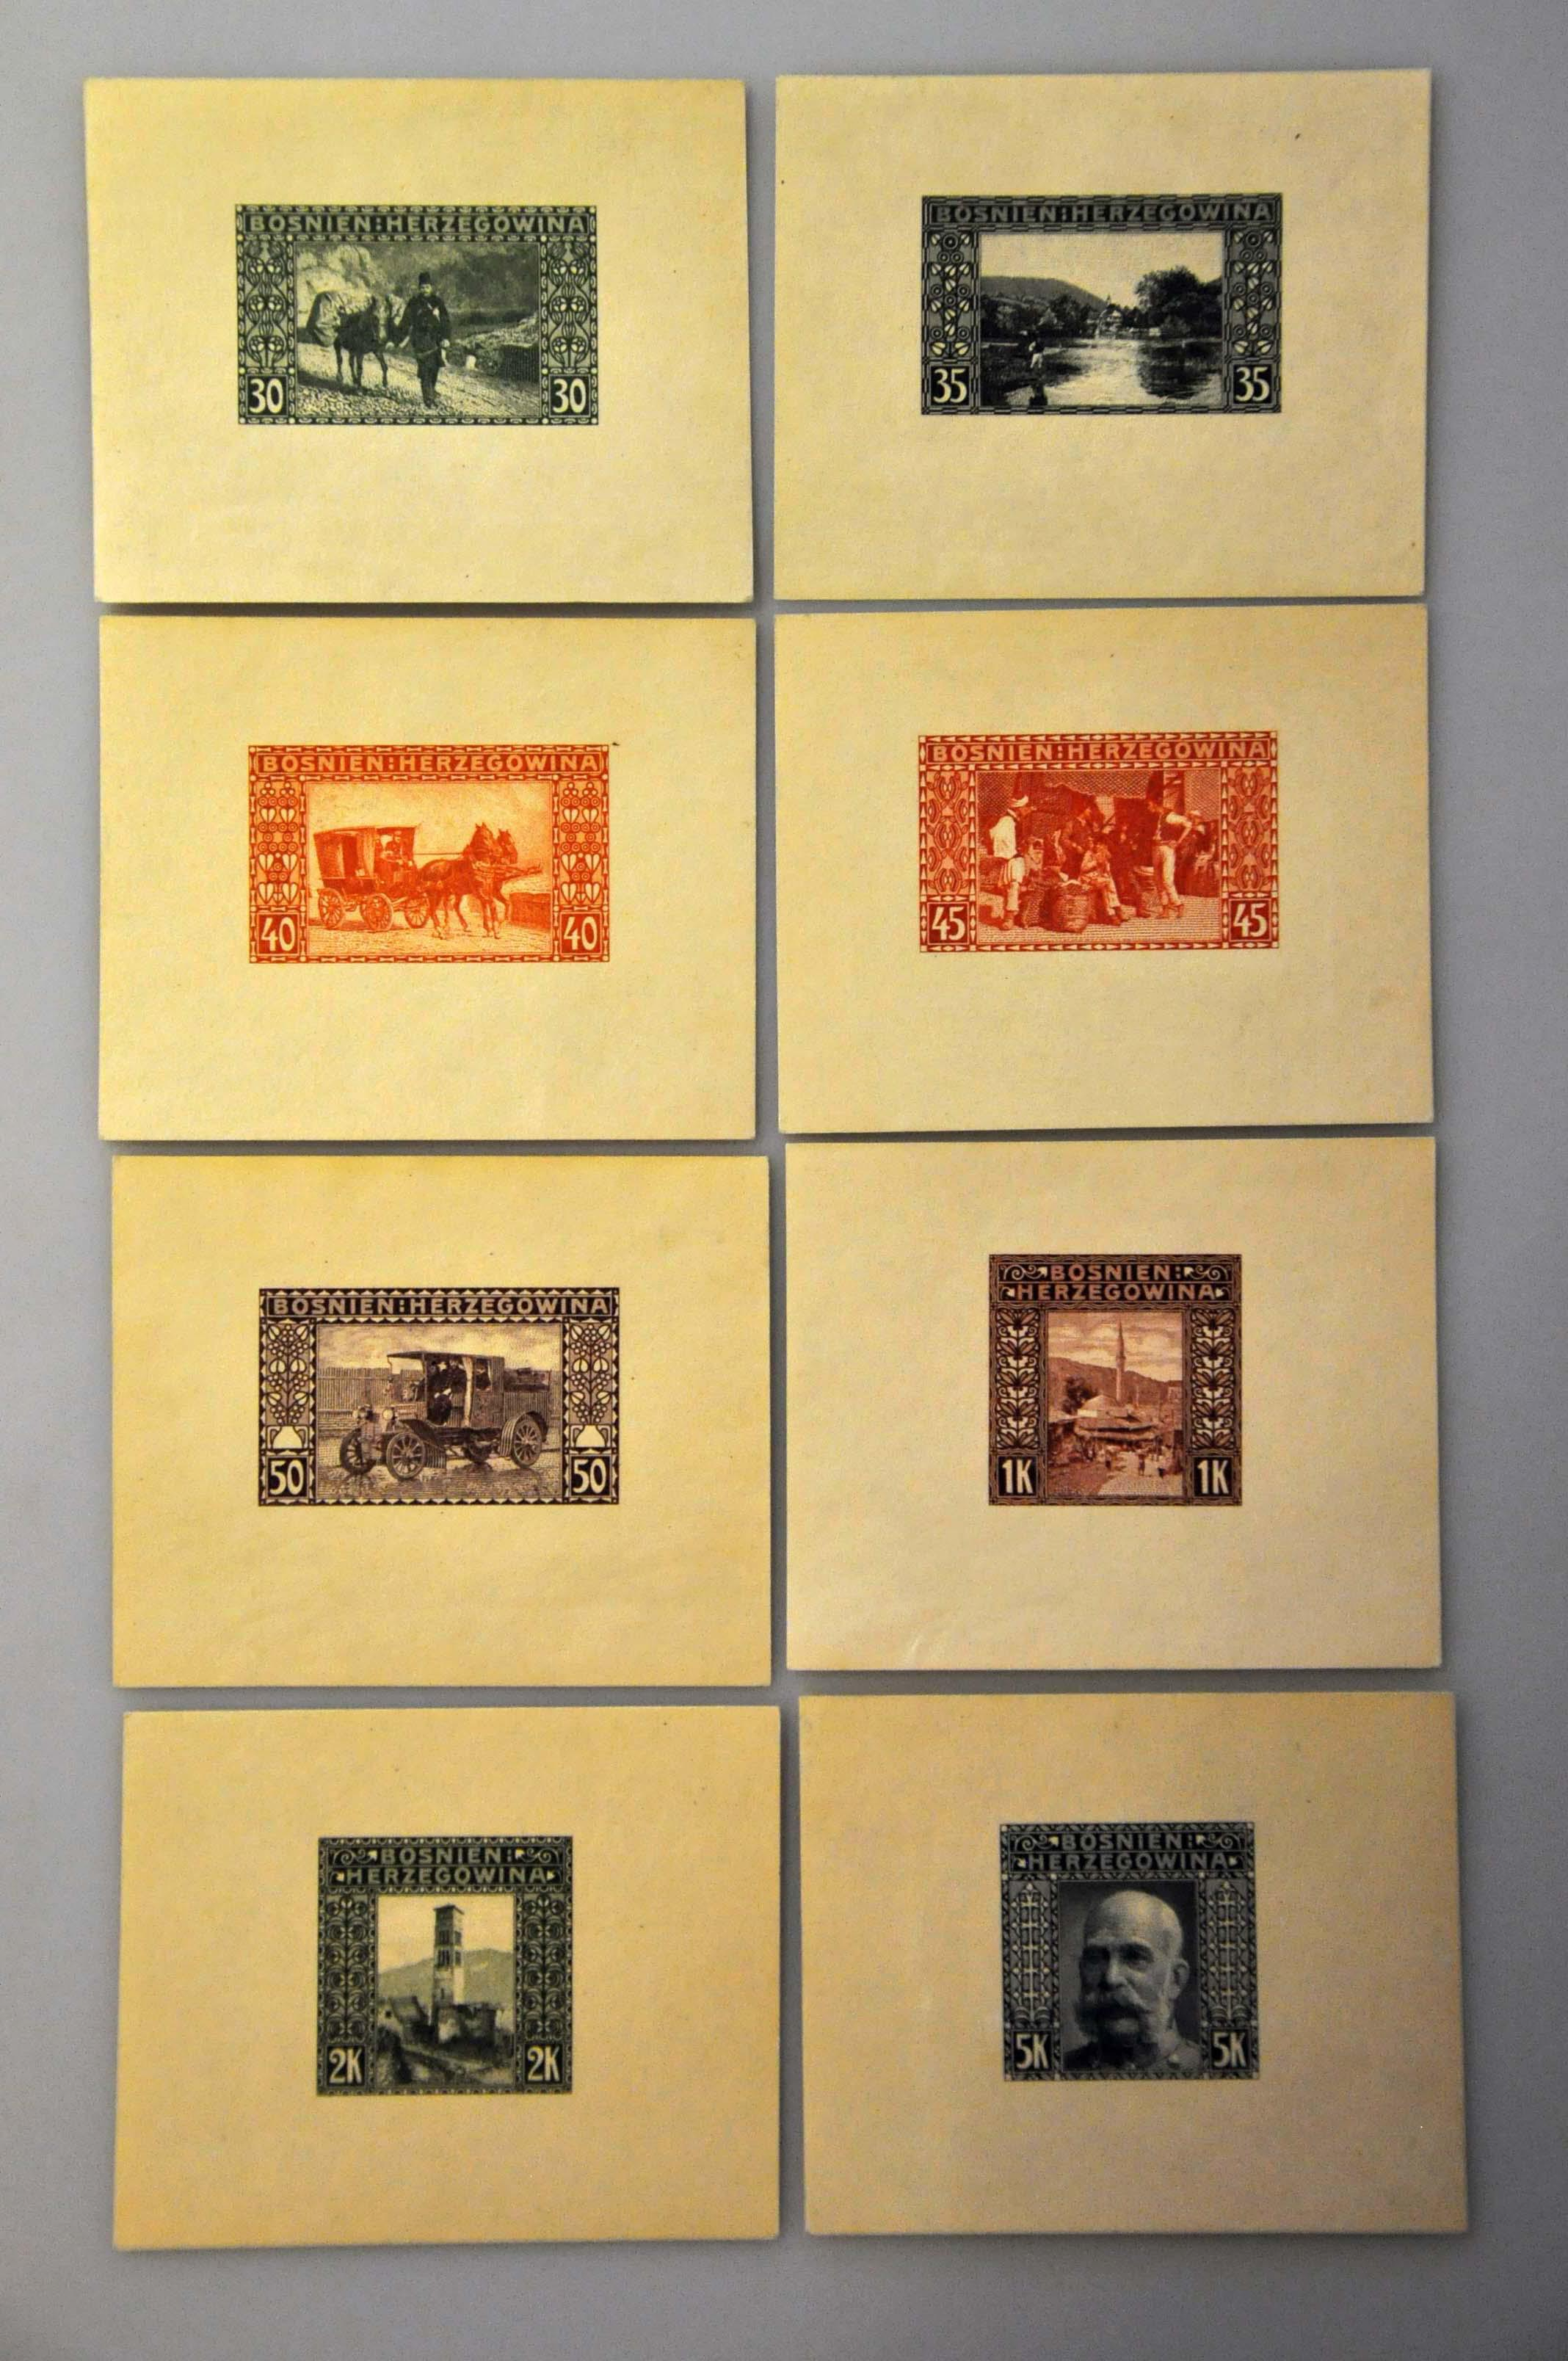 Lot 21 - Austria and former territories Bosnia and Herzegowina (Austrian) -  Corinphila Veilingen Auction 244 -Netherlands and former colonies, WW2 Postal History, Bosnia, German and British colonies, Egypt. - Day 1